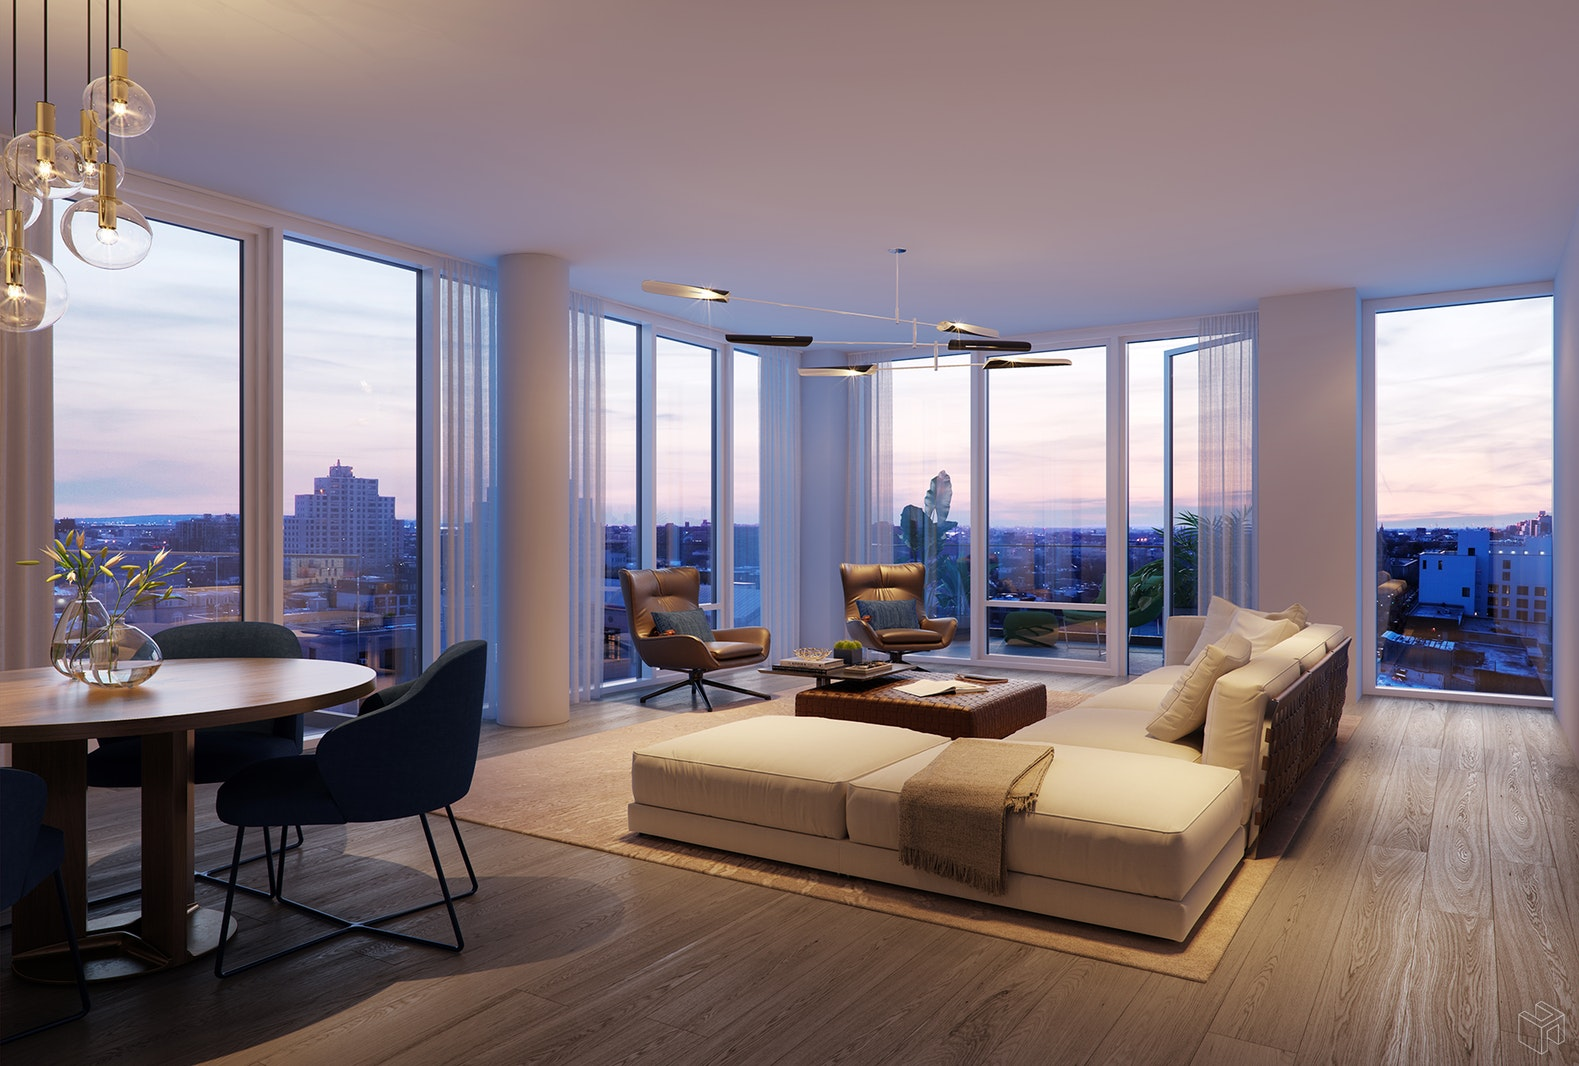 Apartment for sale at 561 Pacific Street, Apt 1002